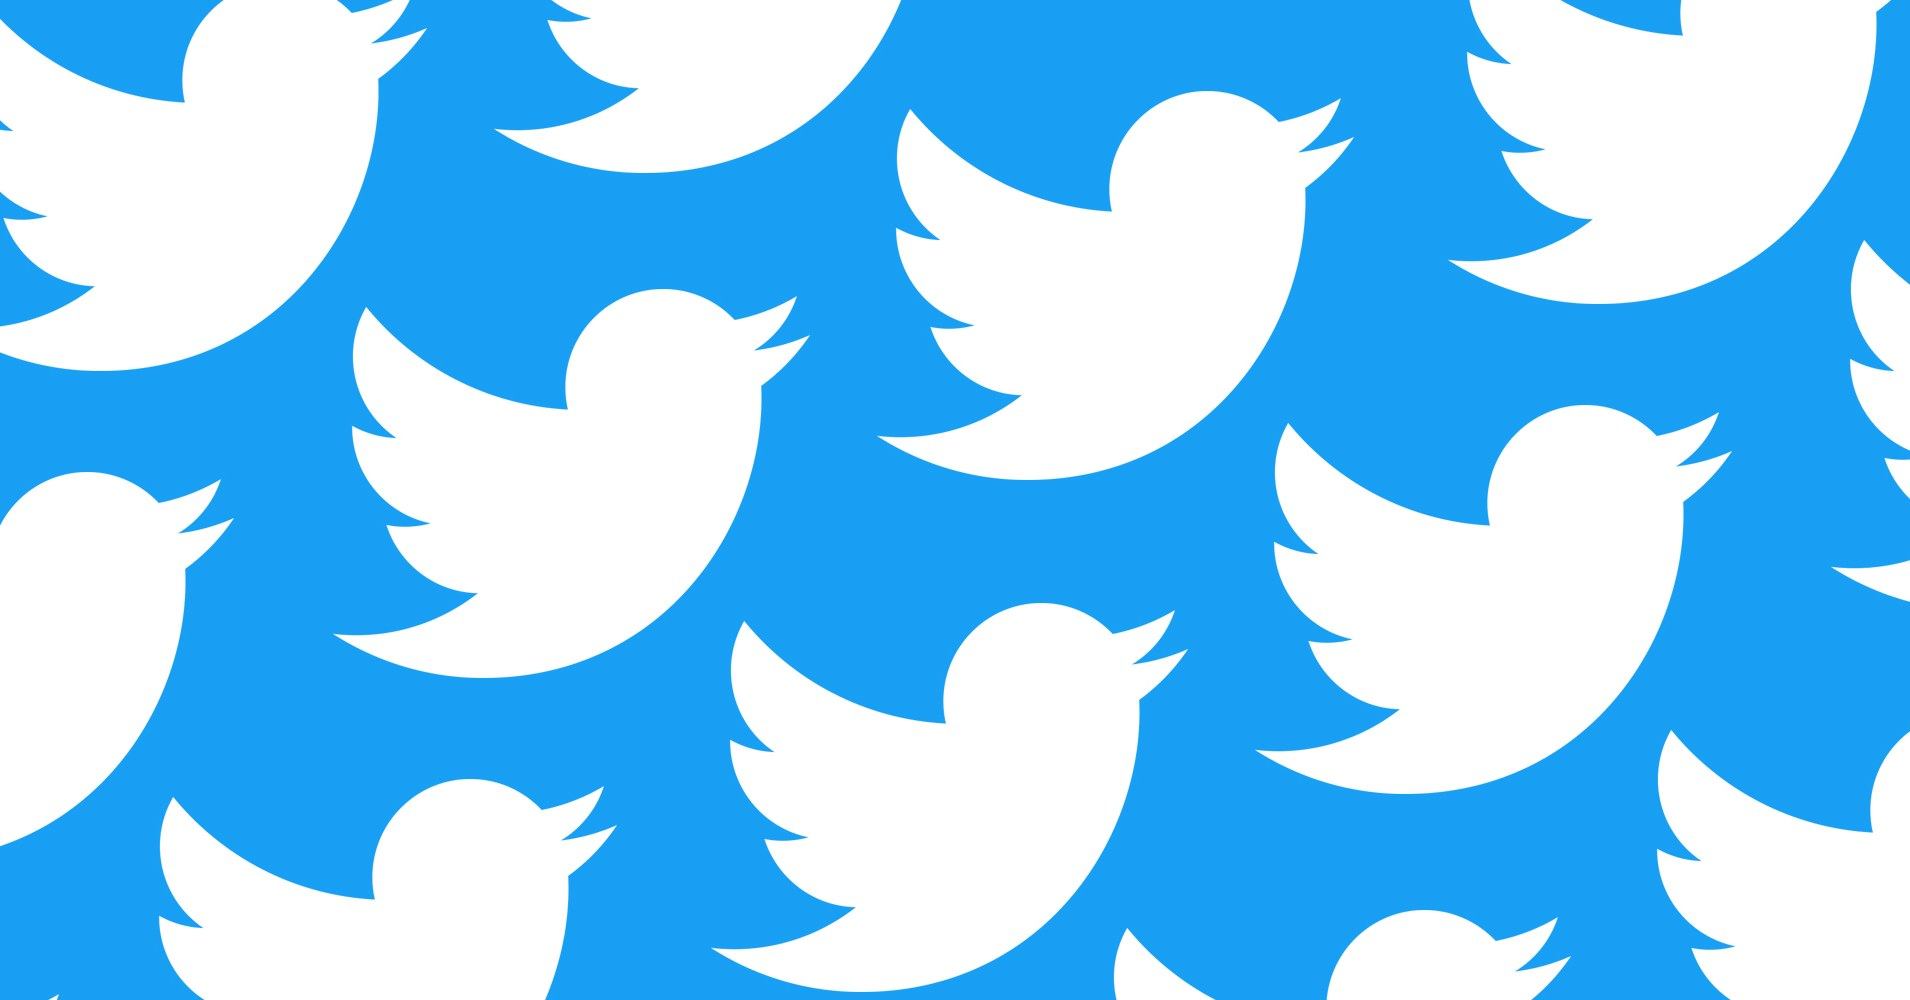 Microblogging site Twitter facing outage